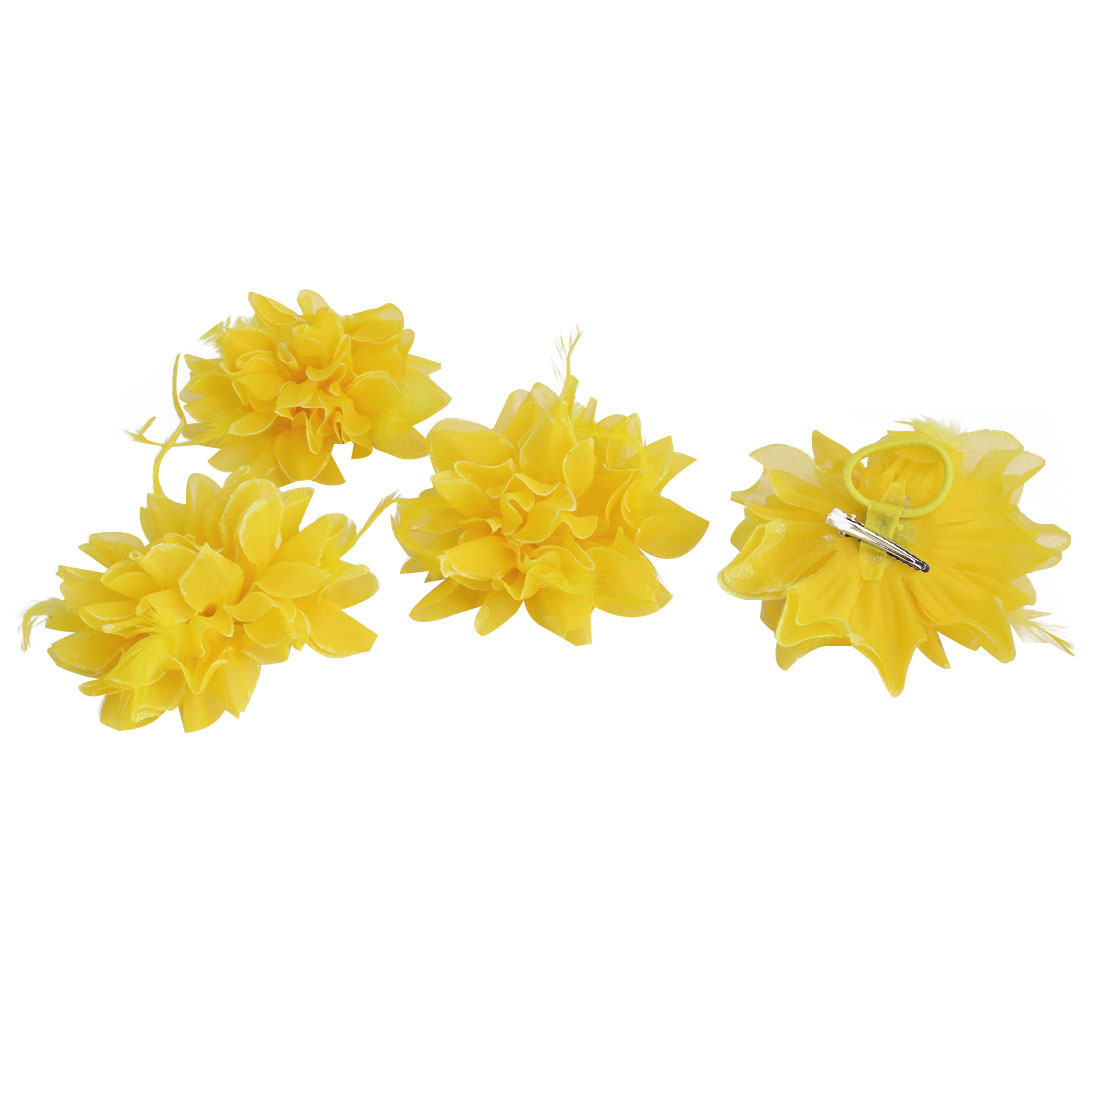 Wedding Fascinator Bridesmaid Hand Hair Decoration Artificial Wrist Flower Yellow 4 Pcs